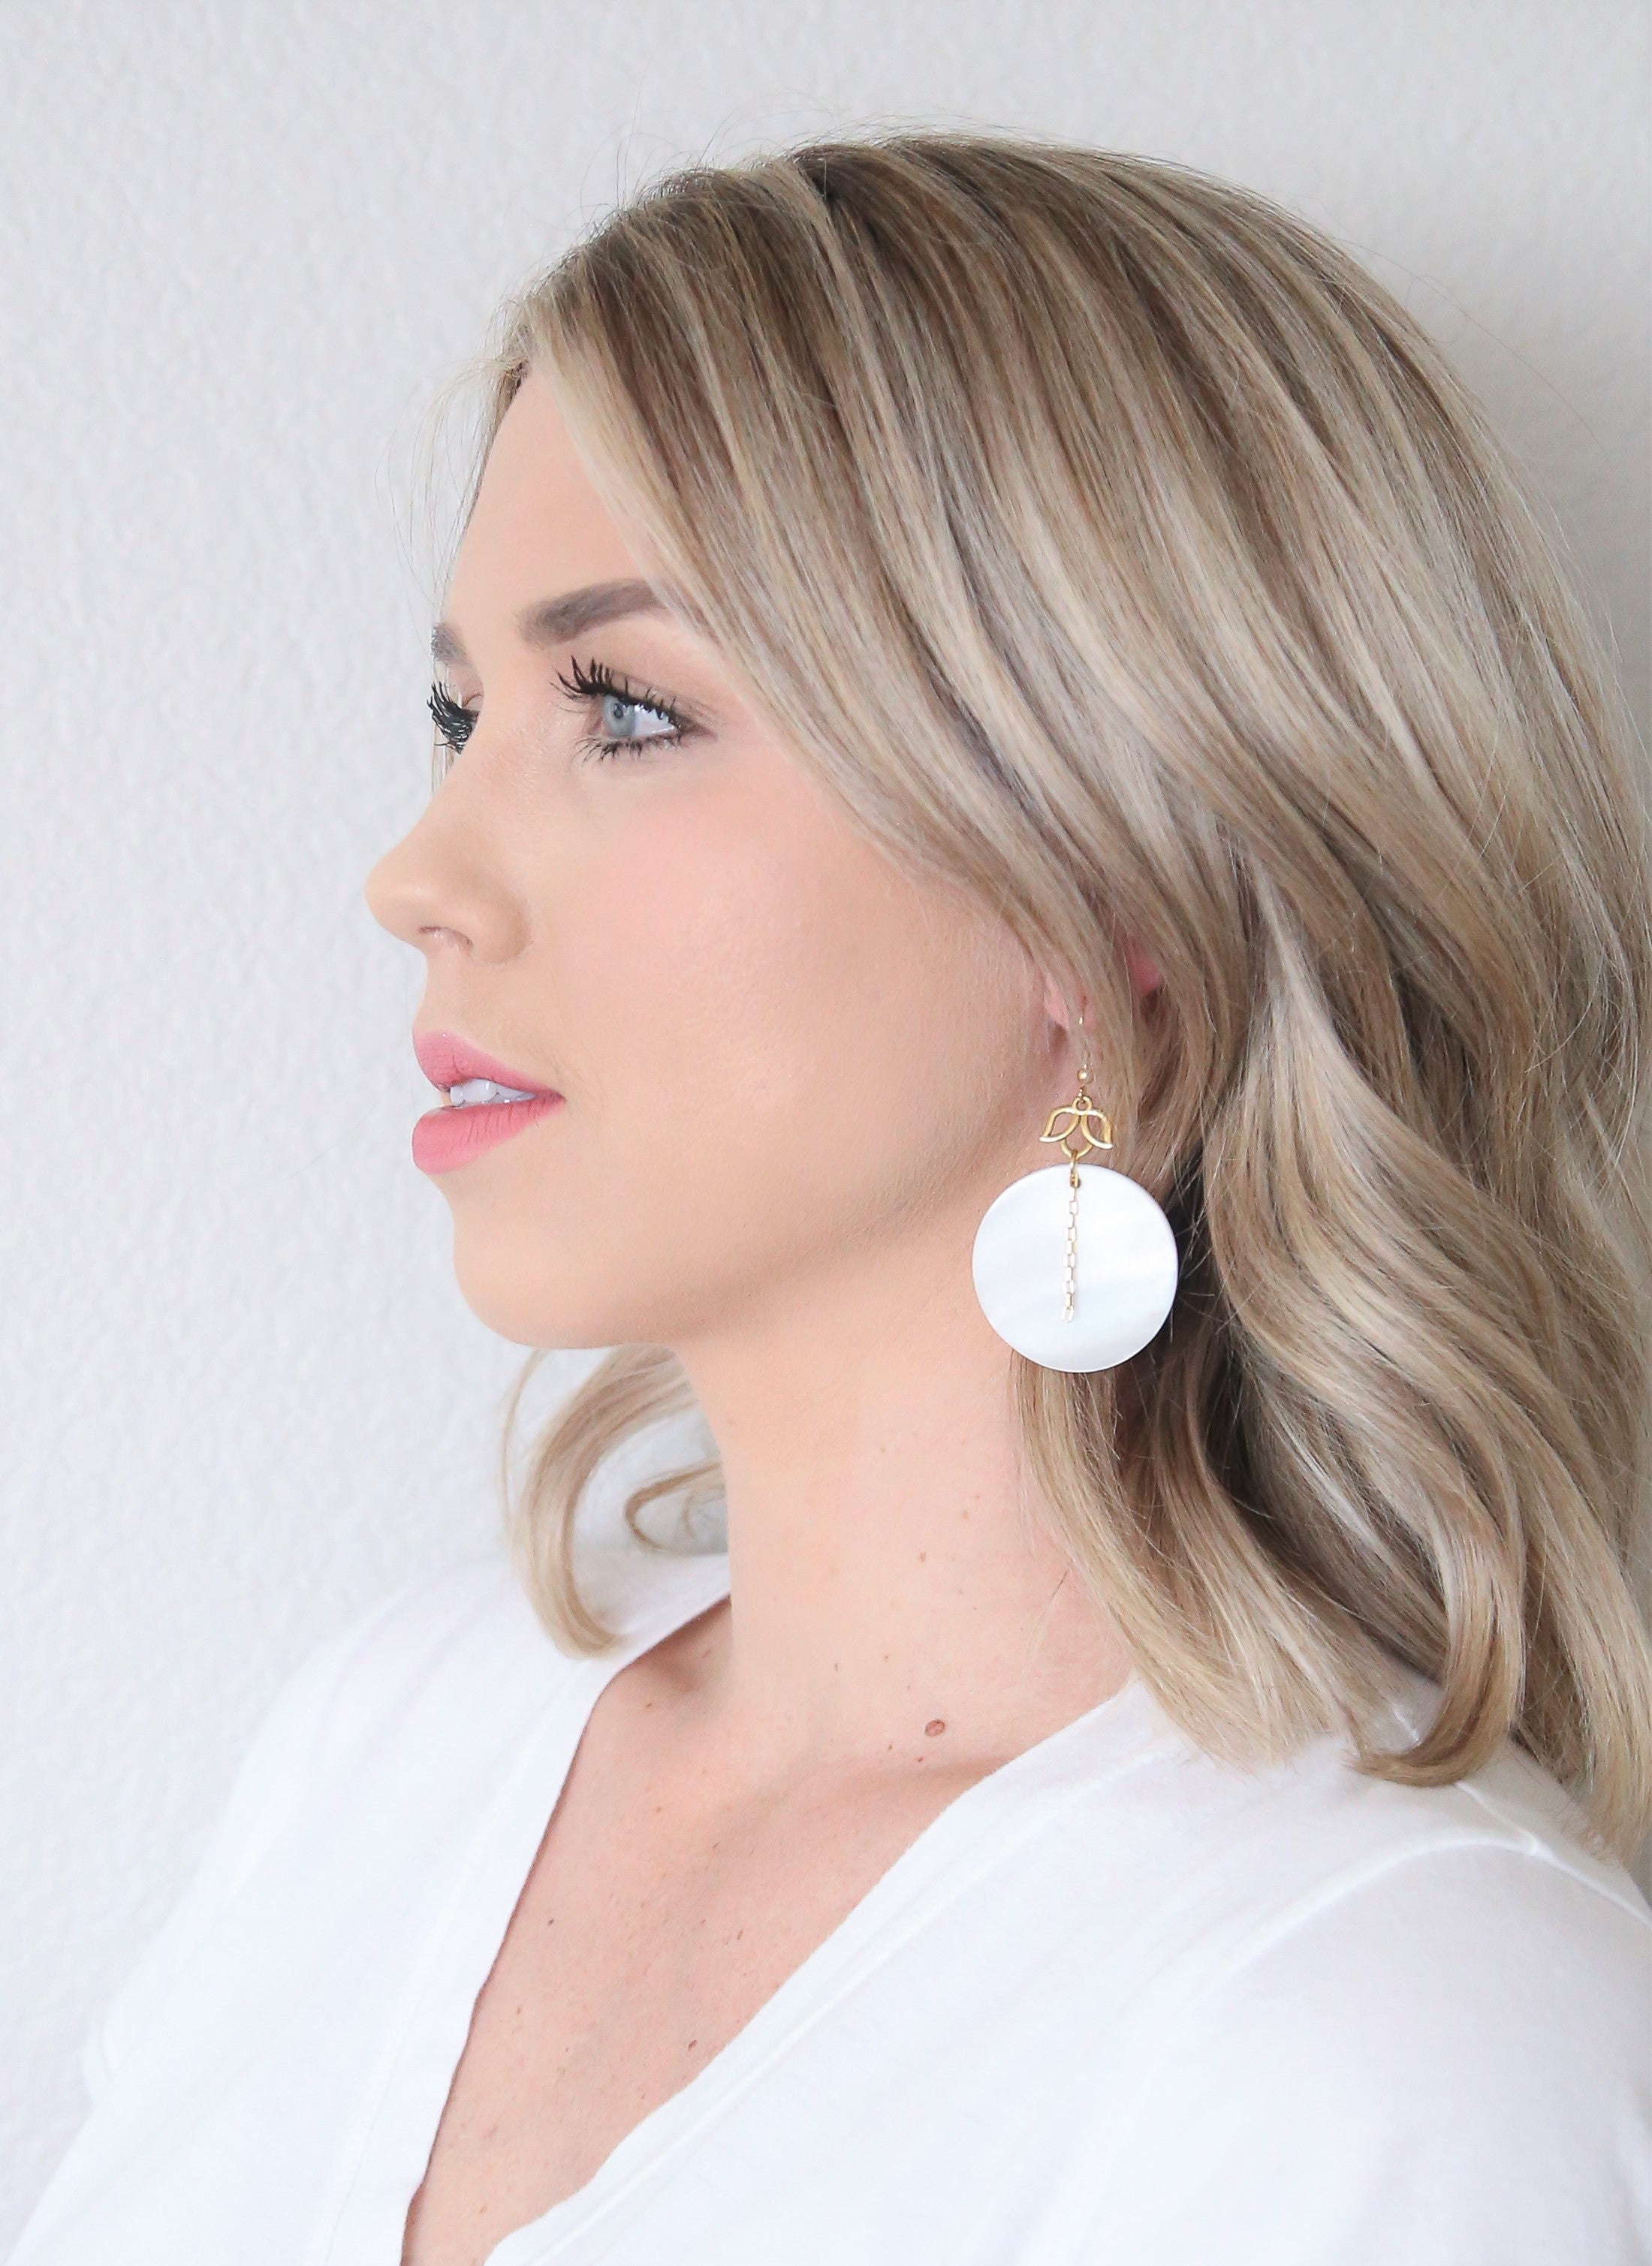 Secure Earrings - Carolyn Hearn Designs